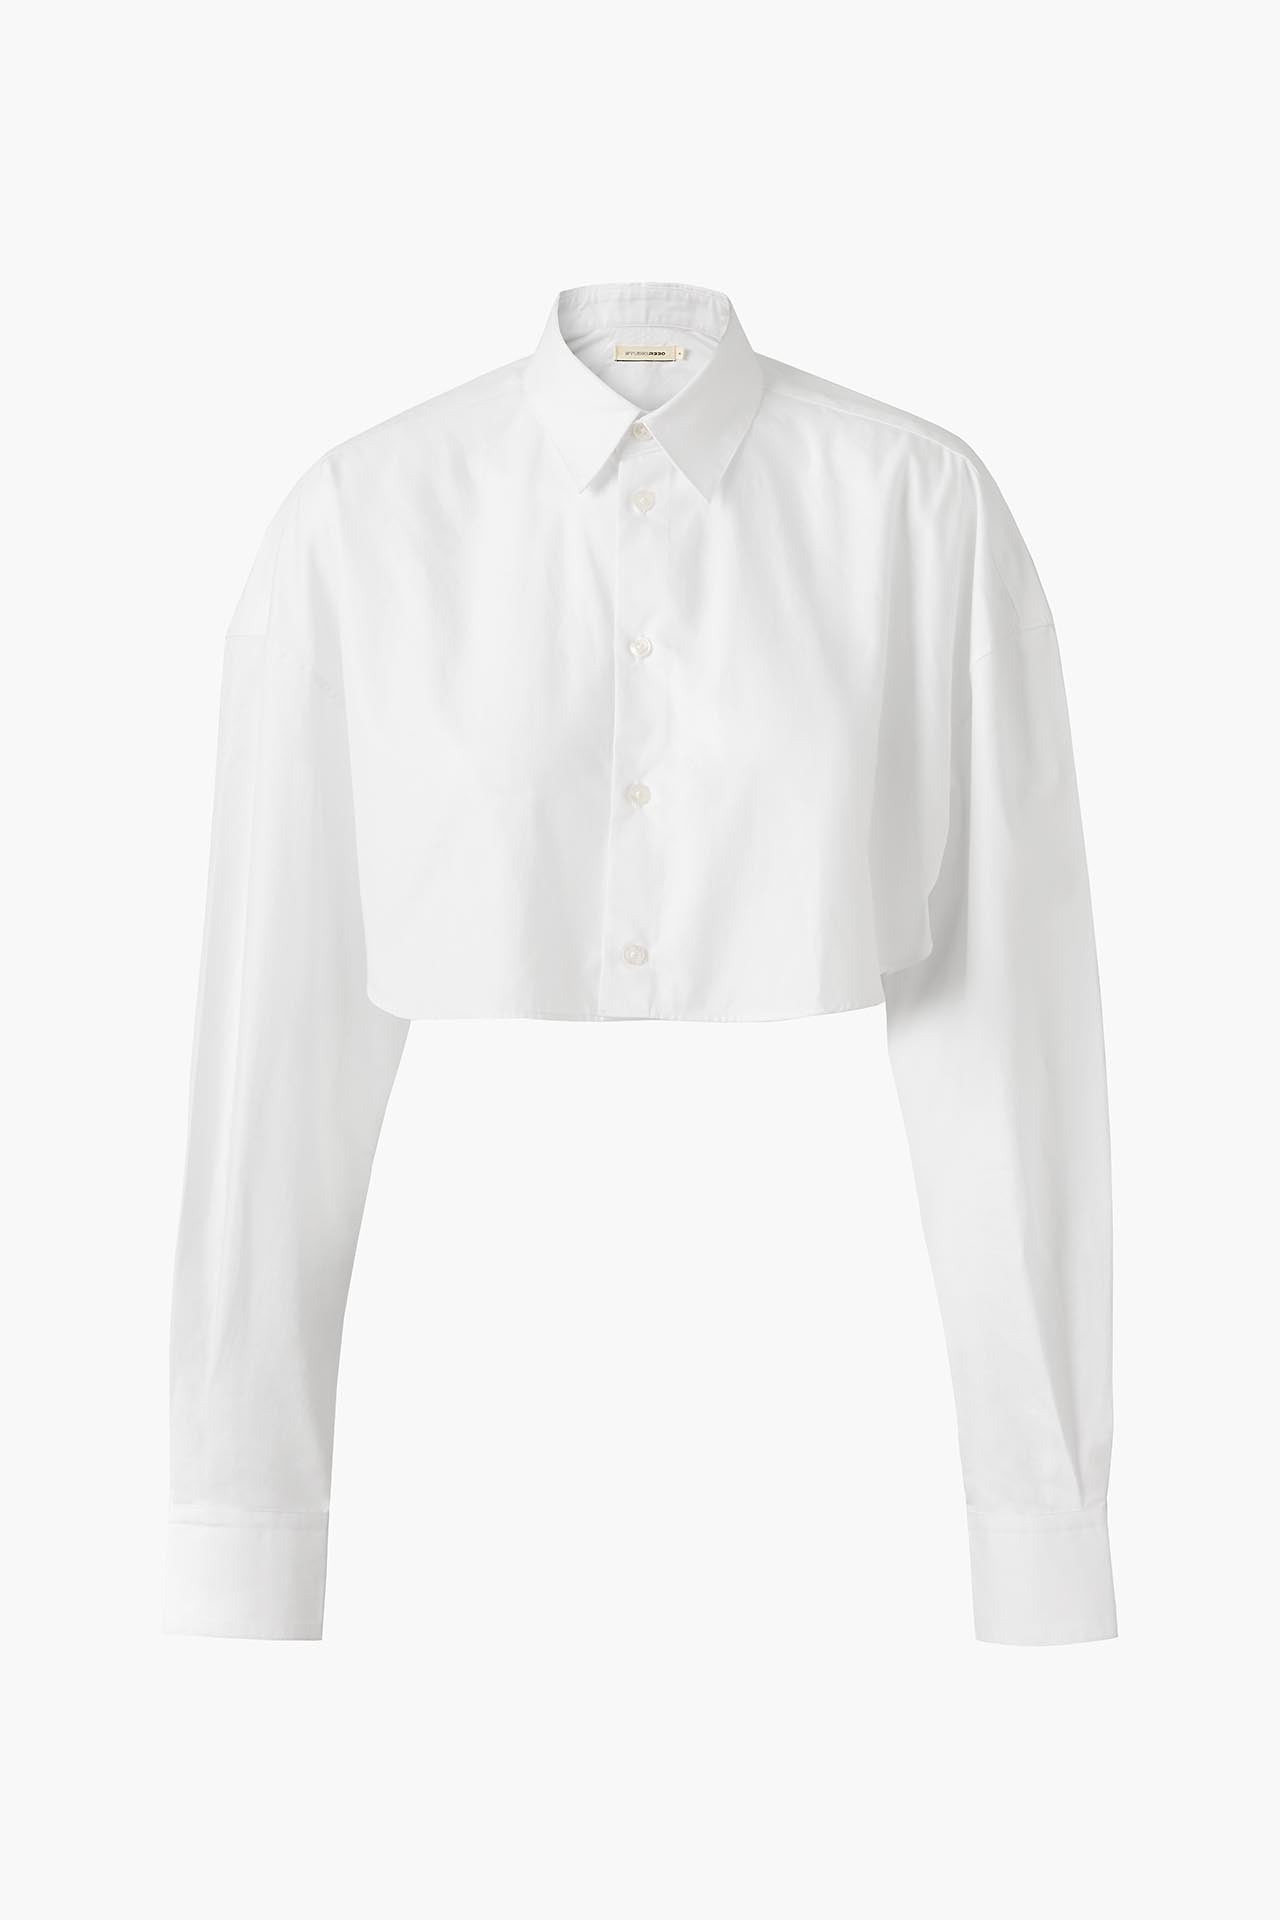 White Cotton Shirt - Cropped Fit